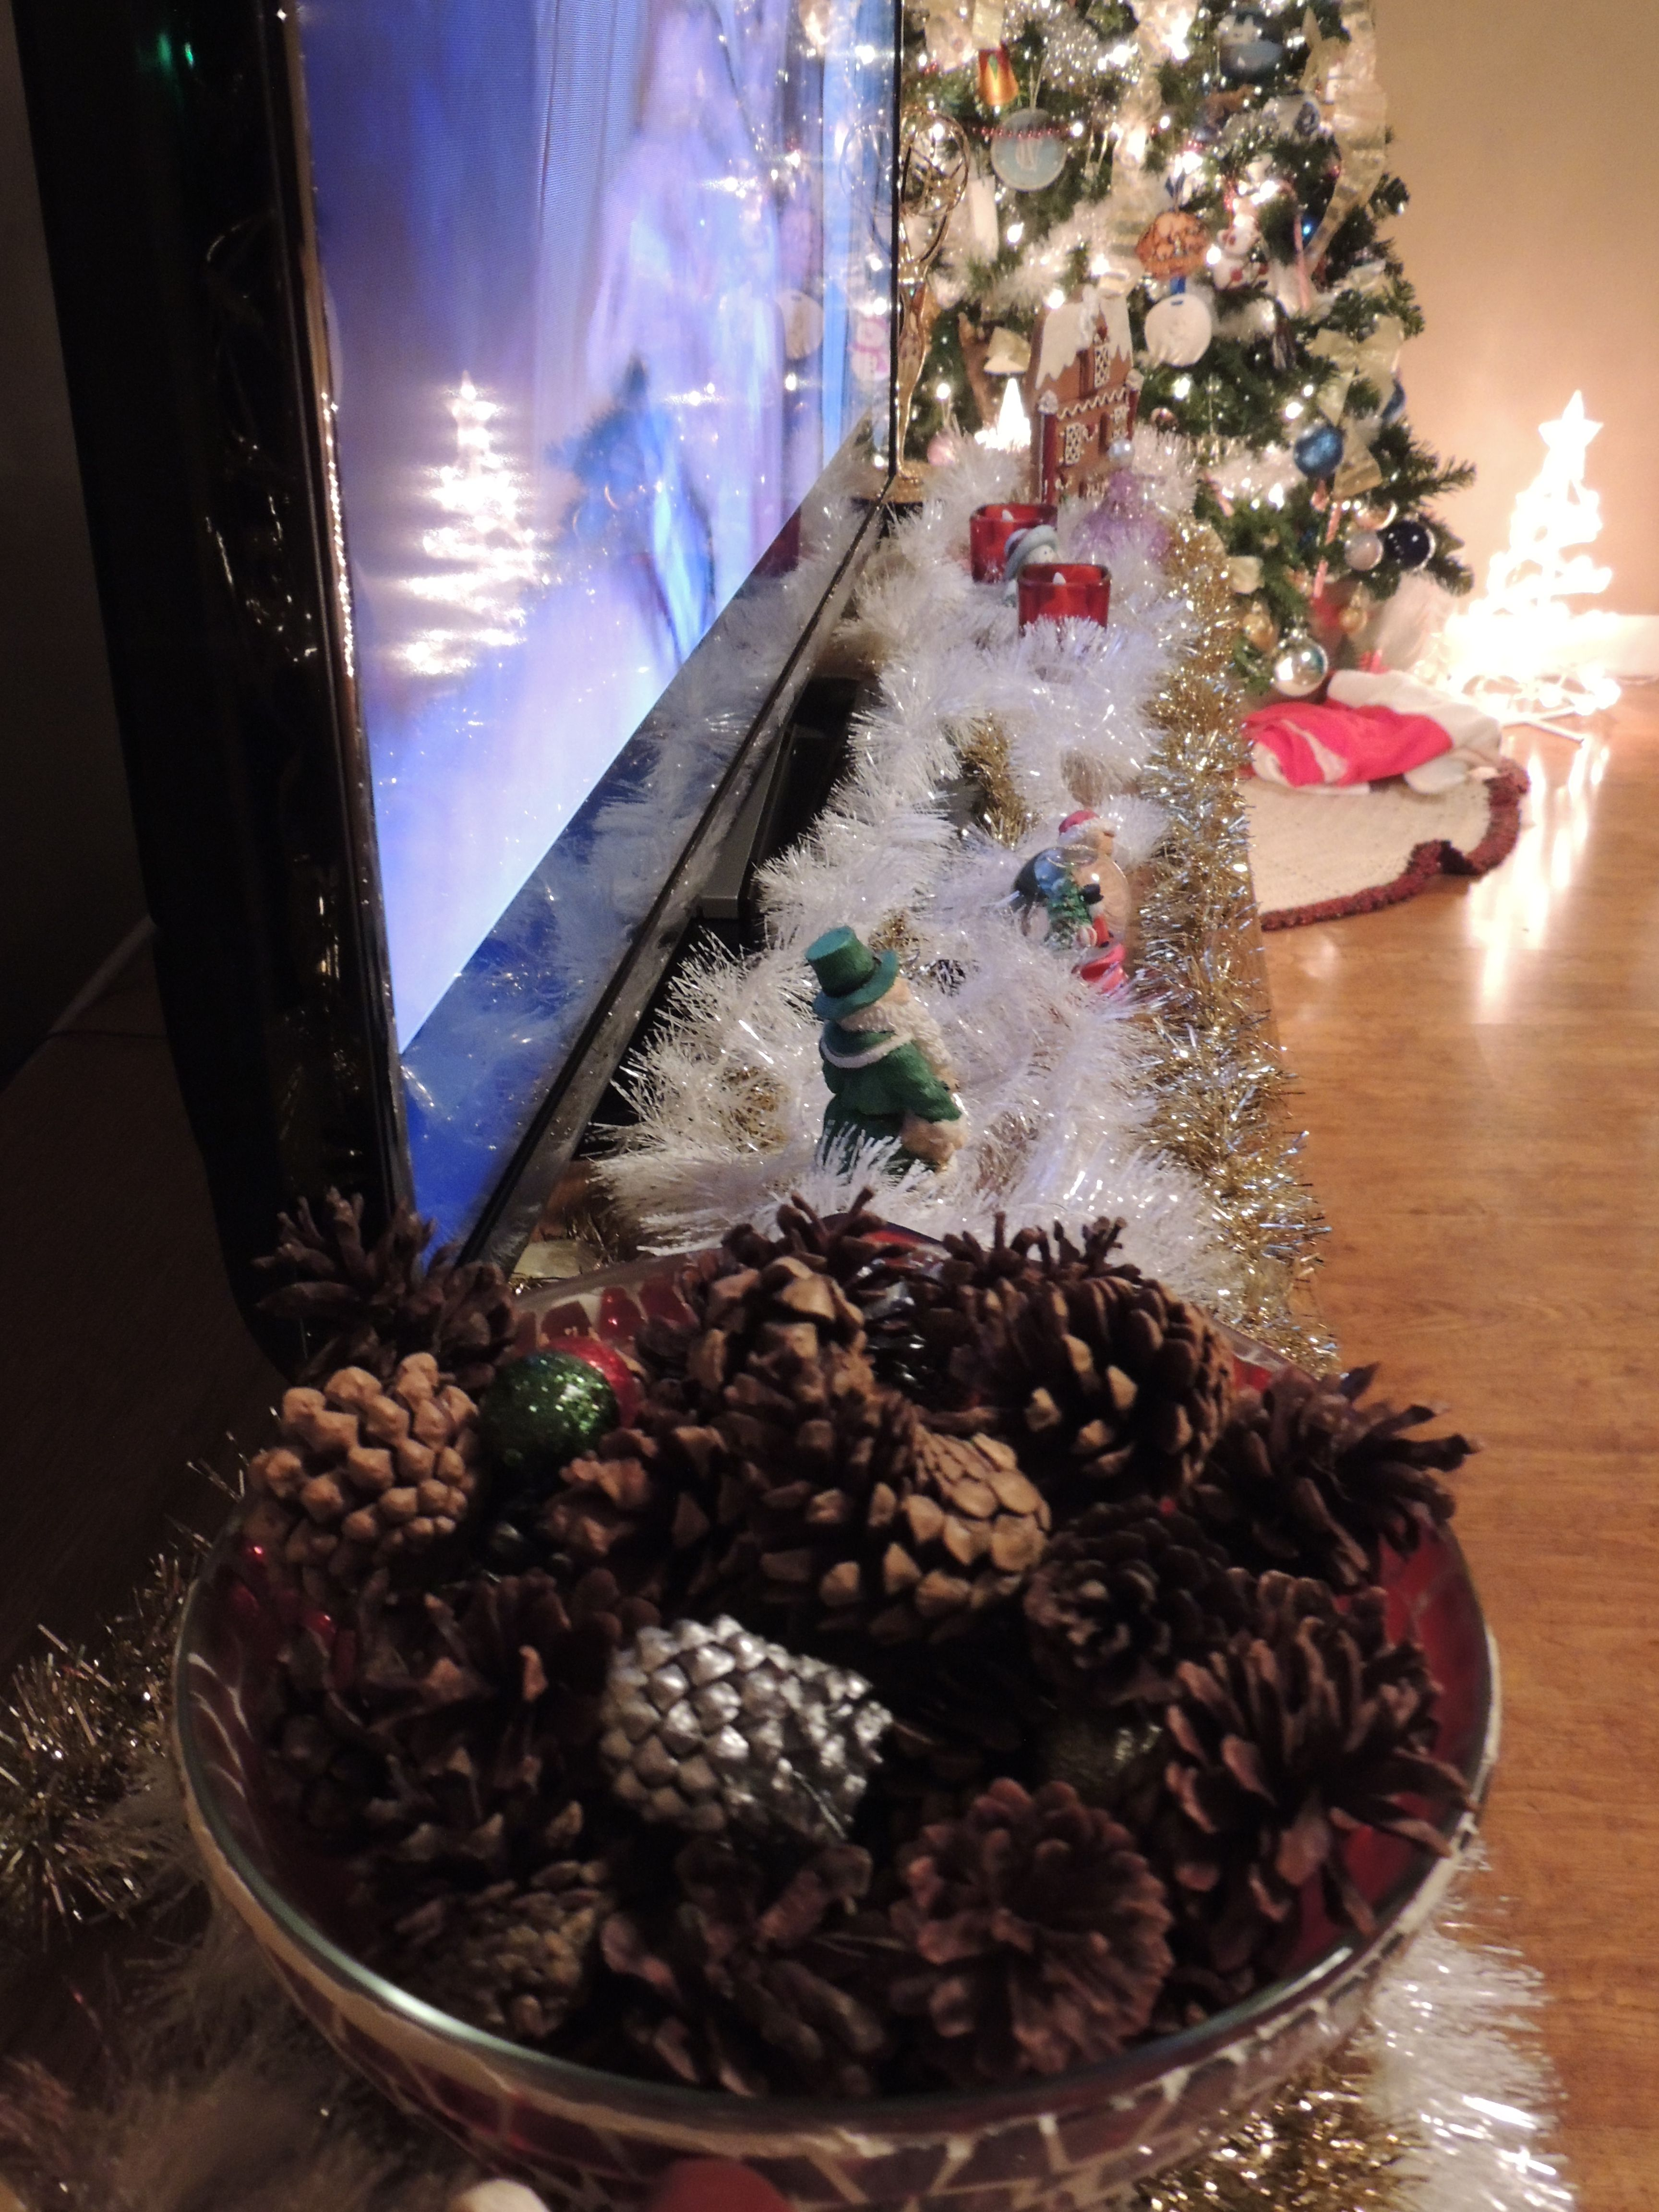 Pinecones, tinsel, battery candles and other Christmas